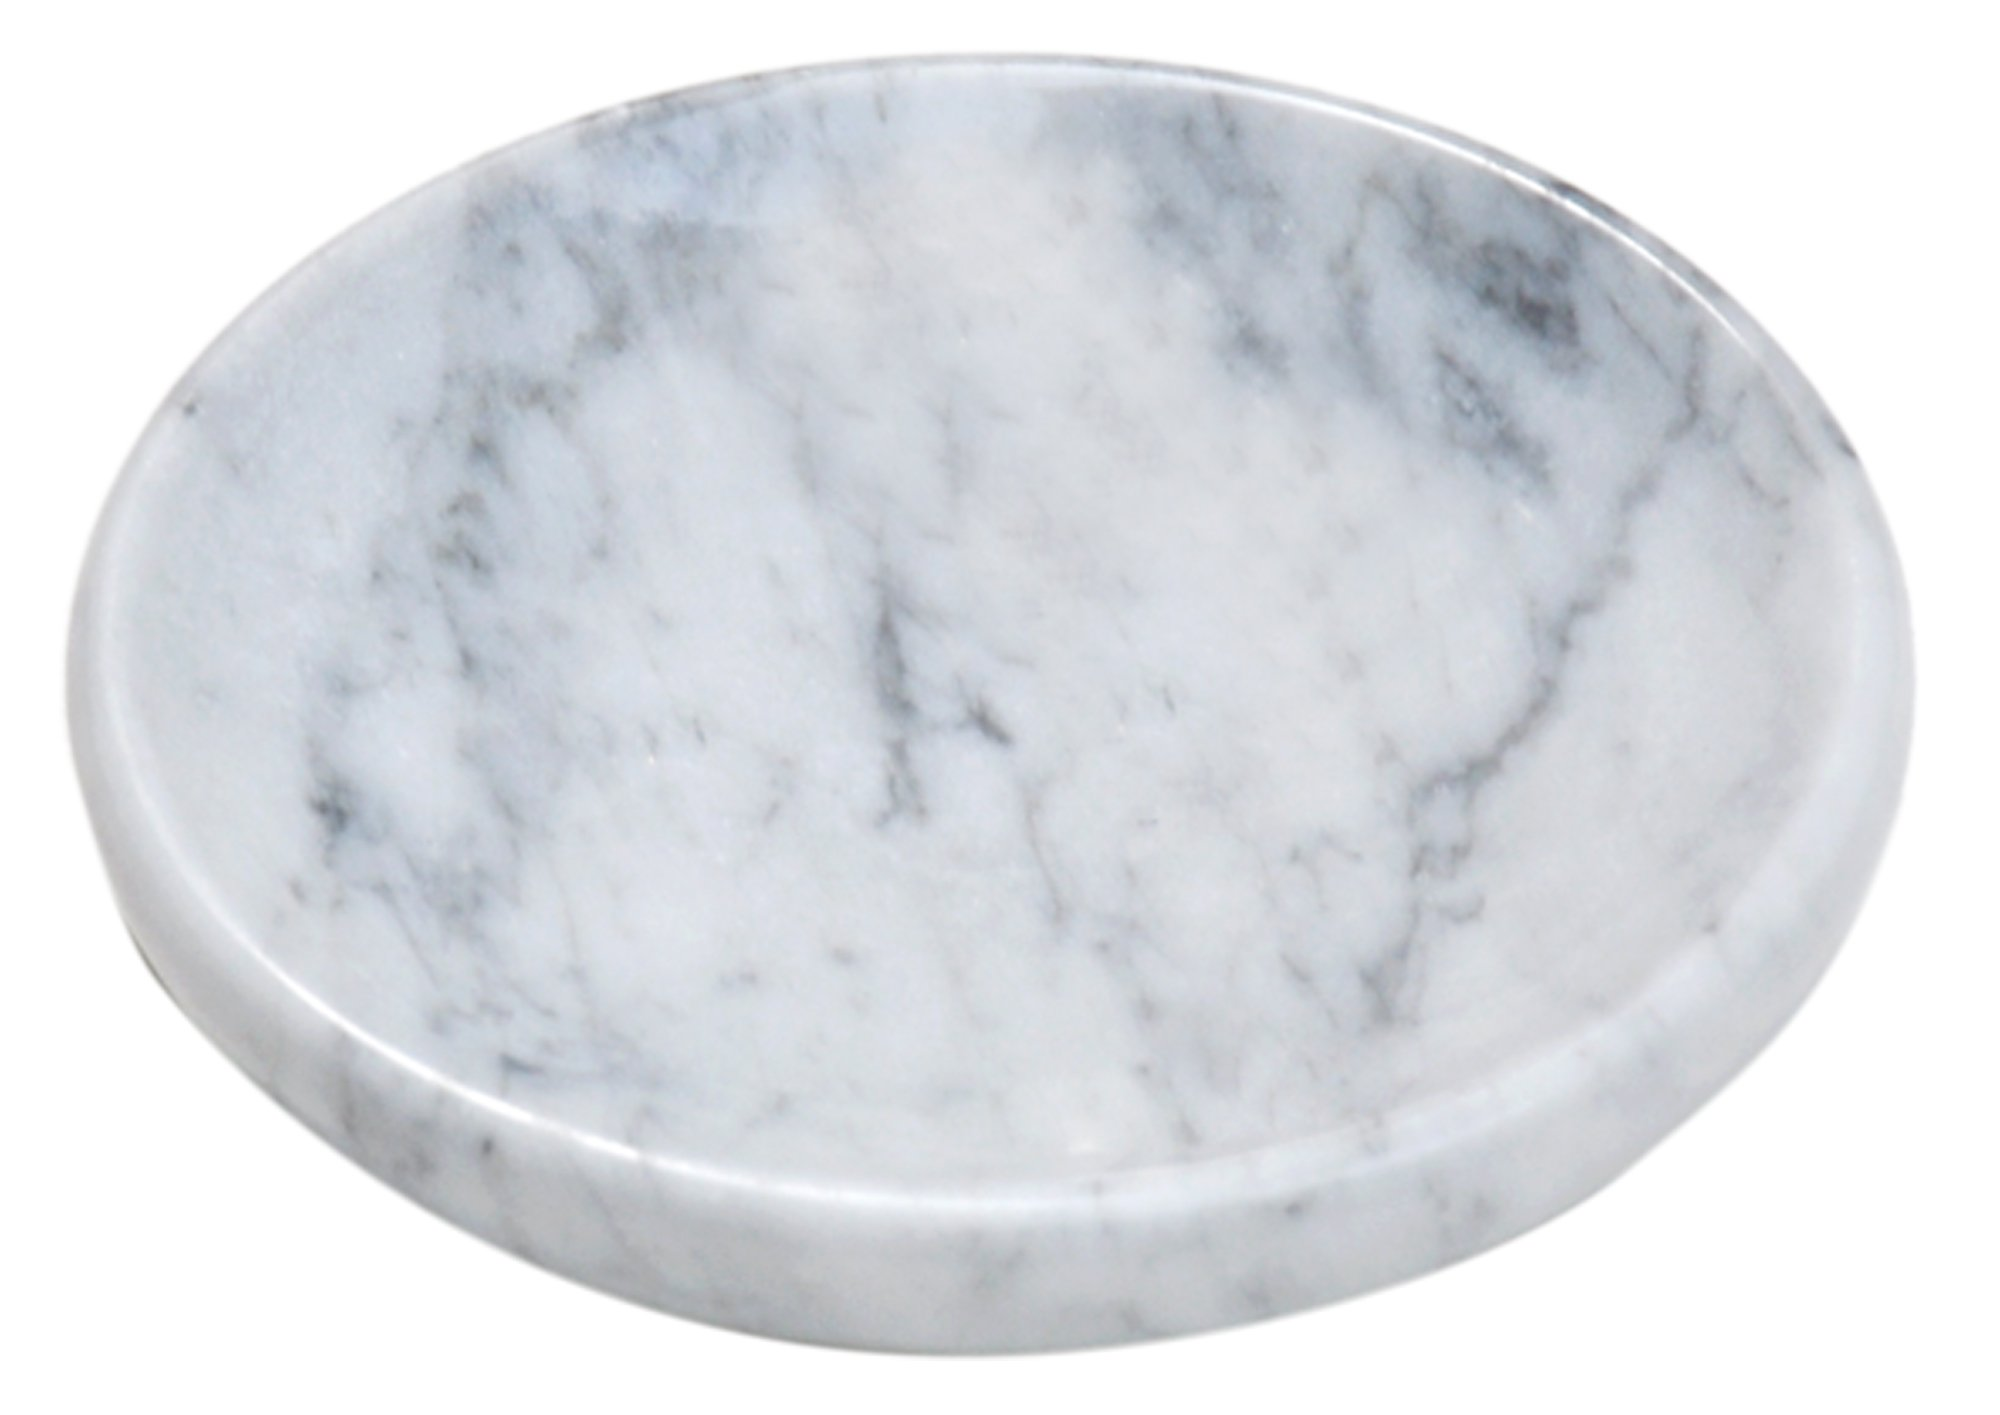 CraftsOfEgypt White Marble Soap Dish - Polished and Shiny Marble Dish Holder - Beautifully Crafted Bathroom Accessory by CraftsOfEgypt